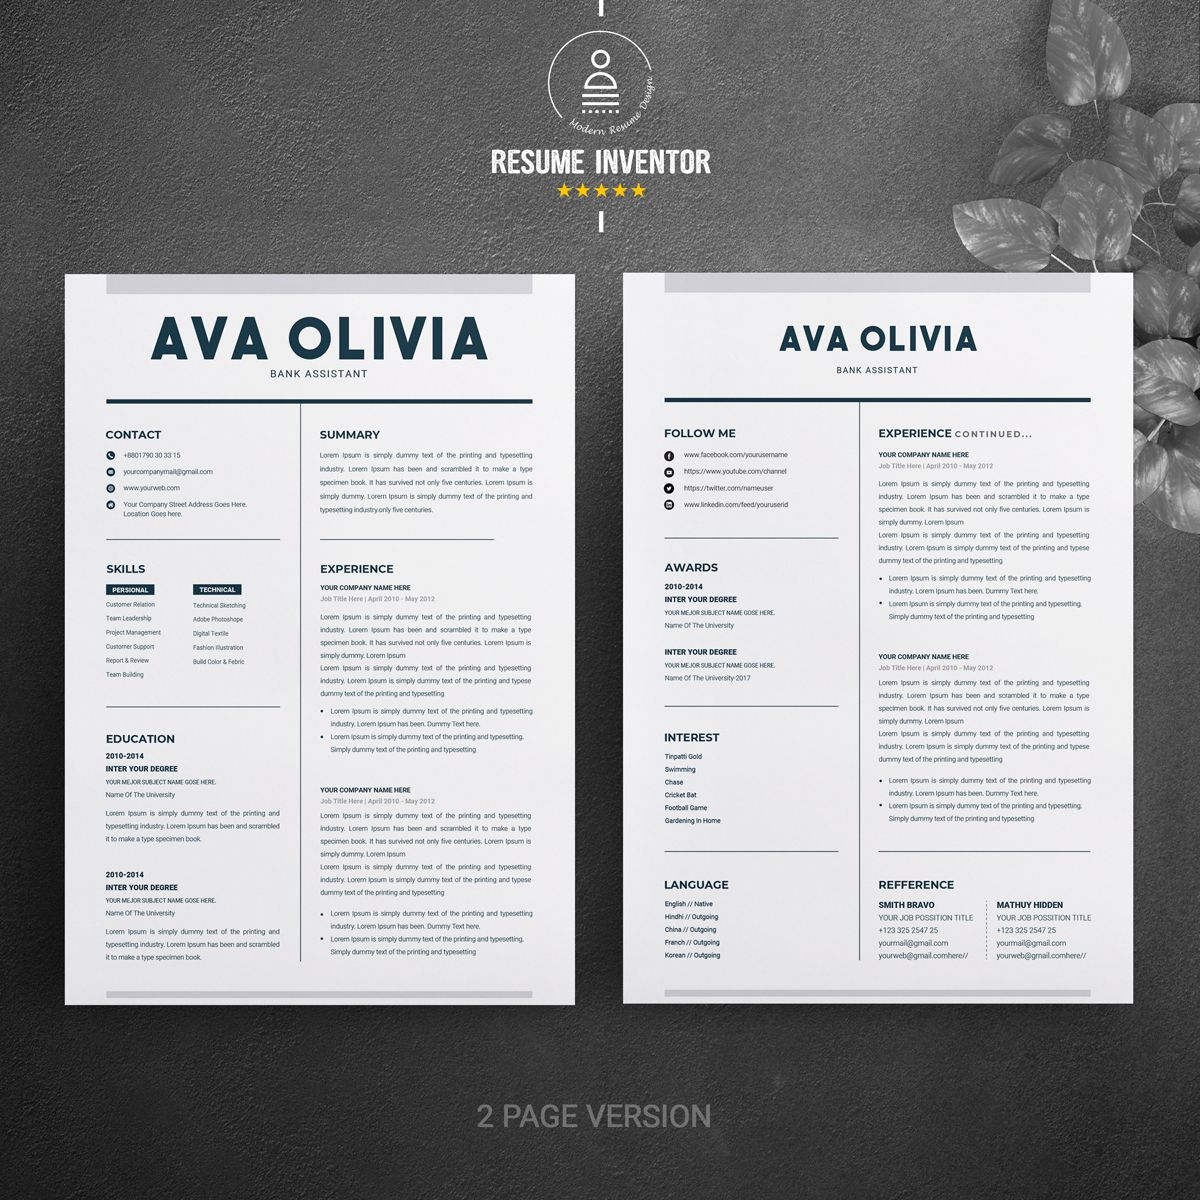 Ava oliva bank finance resume template 70838 with